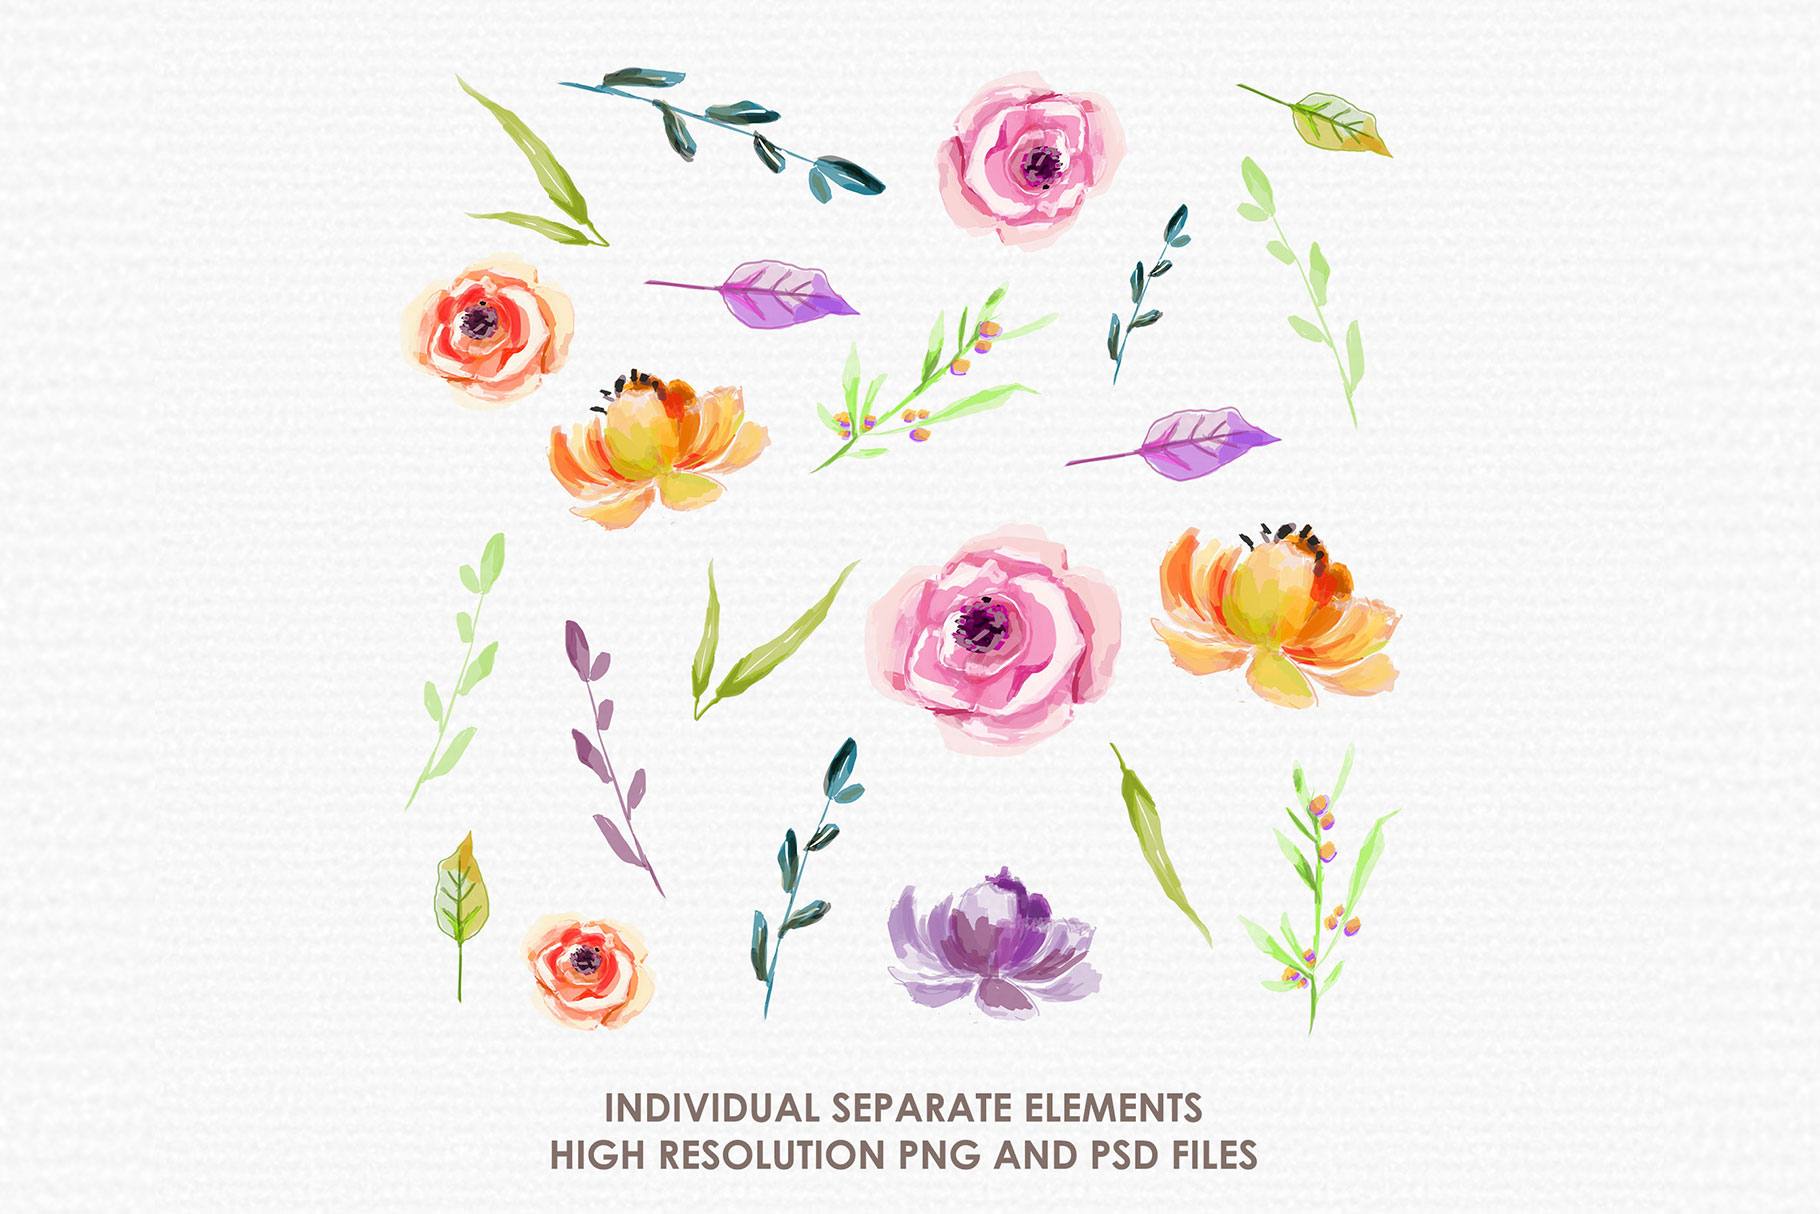 Bergenia - Digital Watercolor Floral Flower Style Clipart example image 2